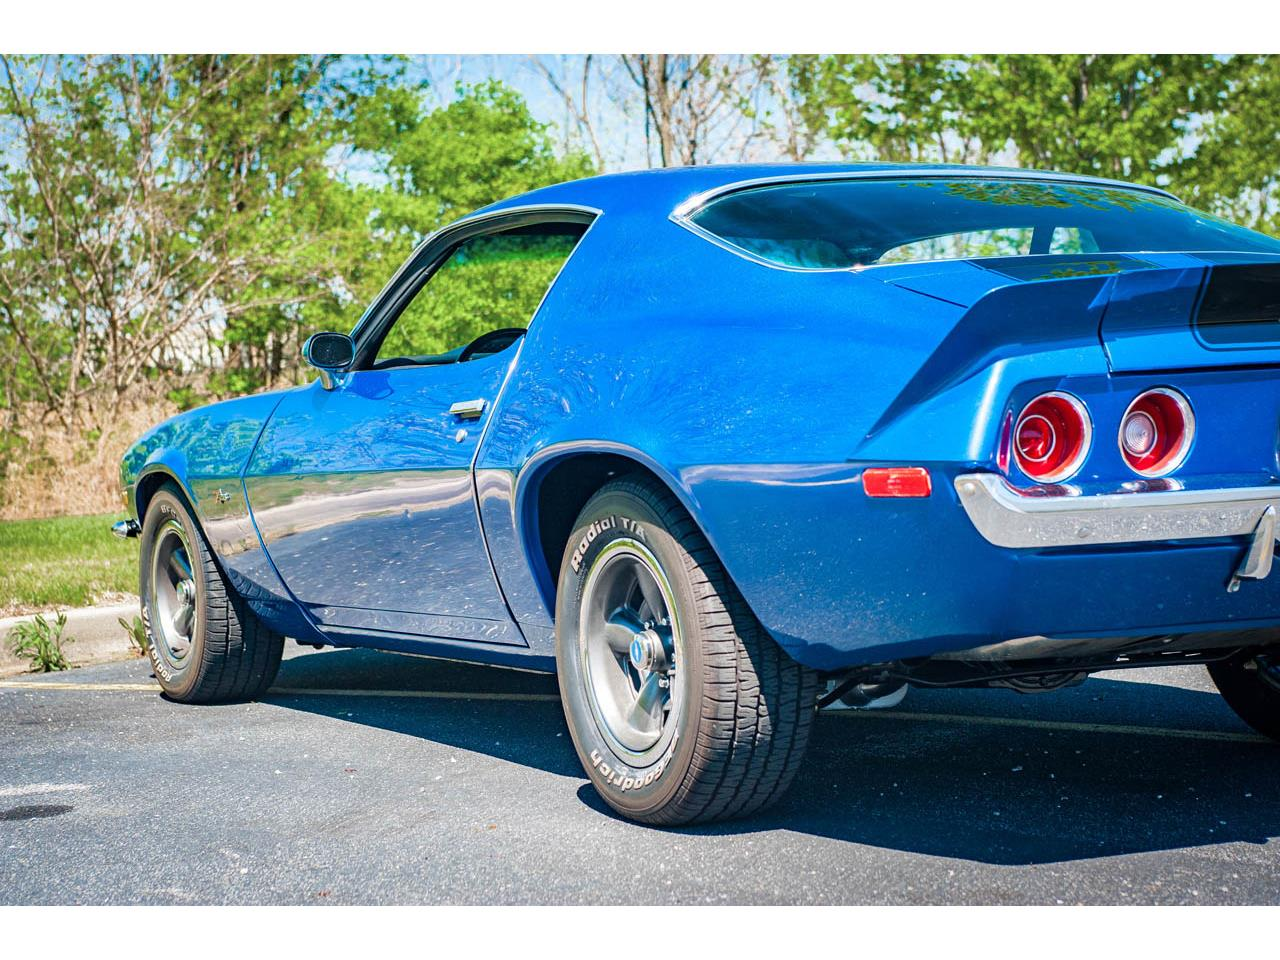 Large Picture of Classic 1971 Camaro located in O'Fallon Illinois - $35,995.00 Offered by Gateway Classic Cars - St. Louis - QB8S